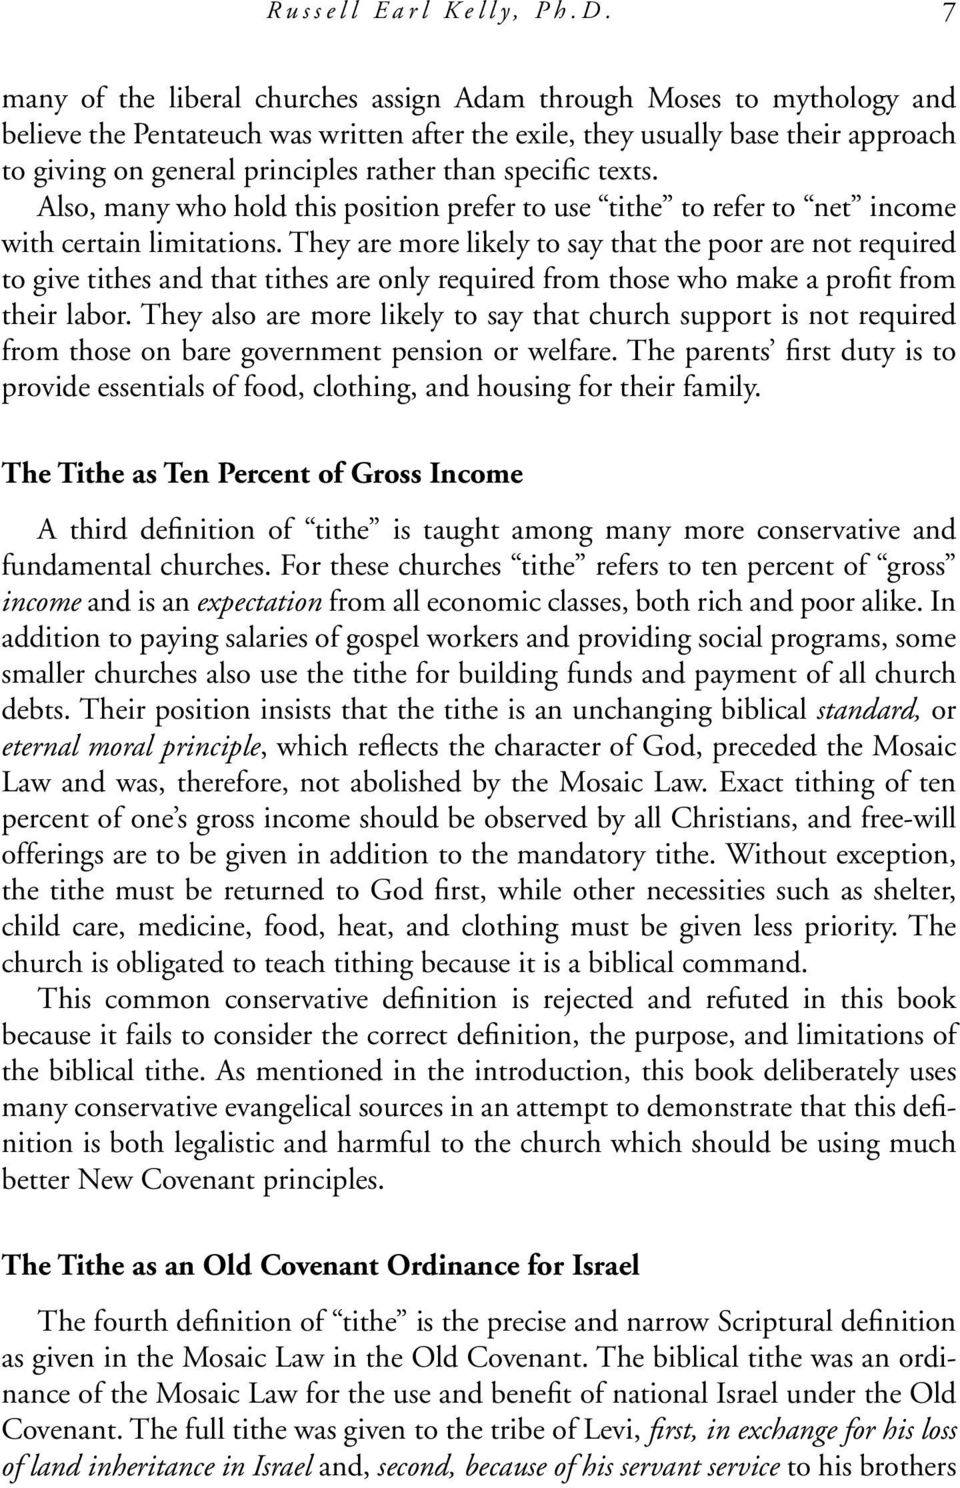 than specific texts. Also, many who hold this position prefer to use tithe to refer to net income with certain limitations.